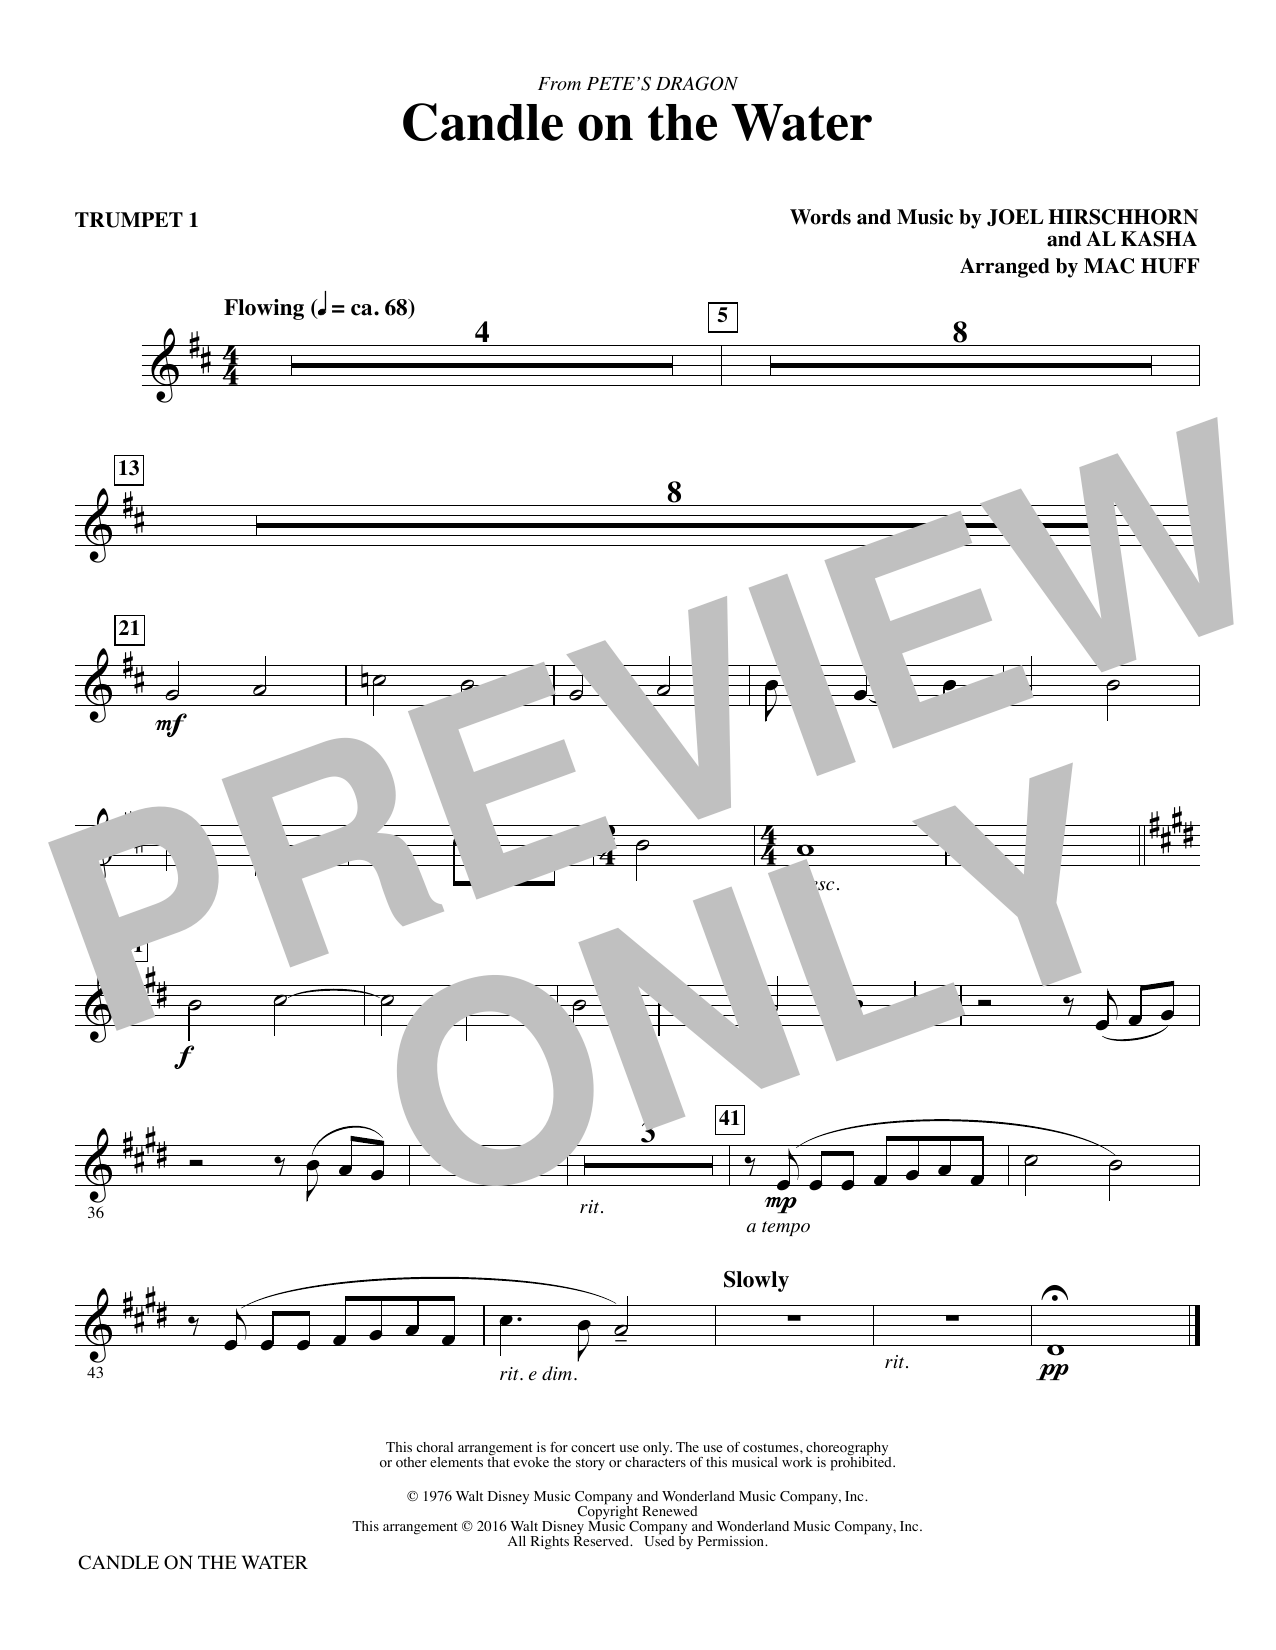 Candle on the Water (complete set of parts) sheet music for orchestra/band by Joel Hirschhorn, Al Kasha and Mac Huff. Score Image Preview.